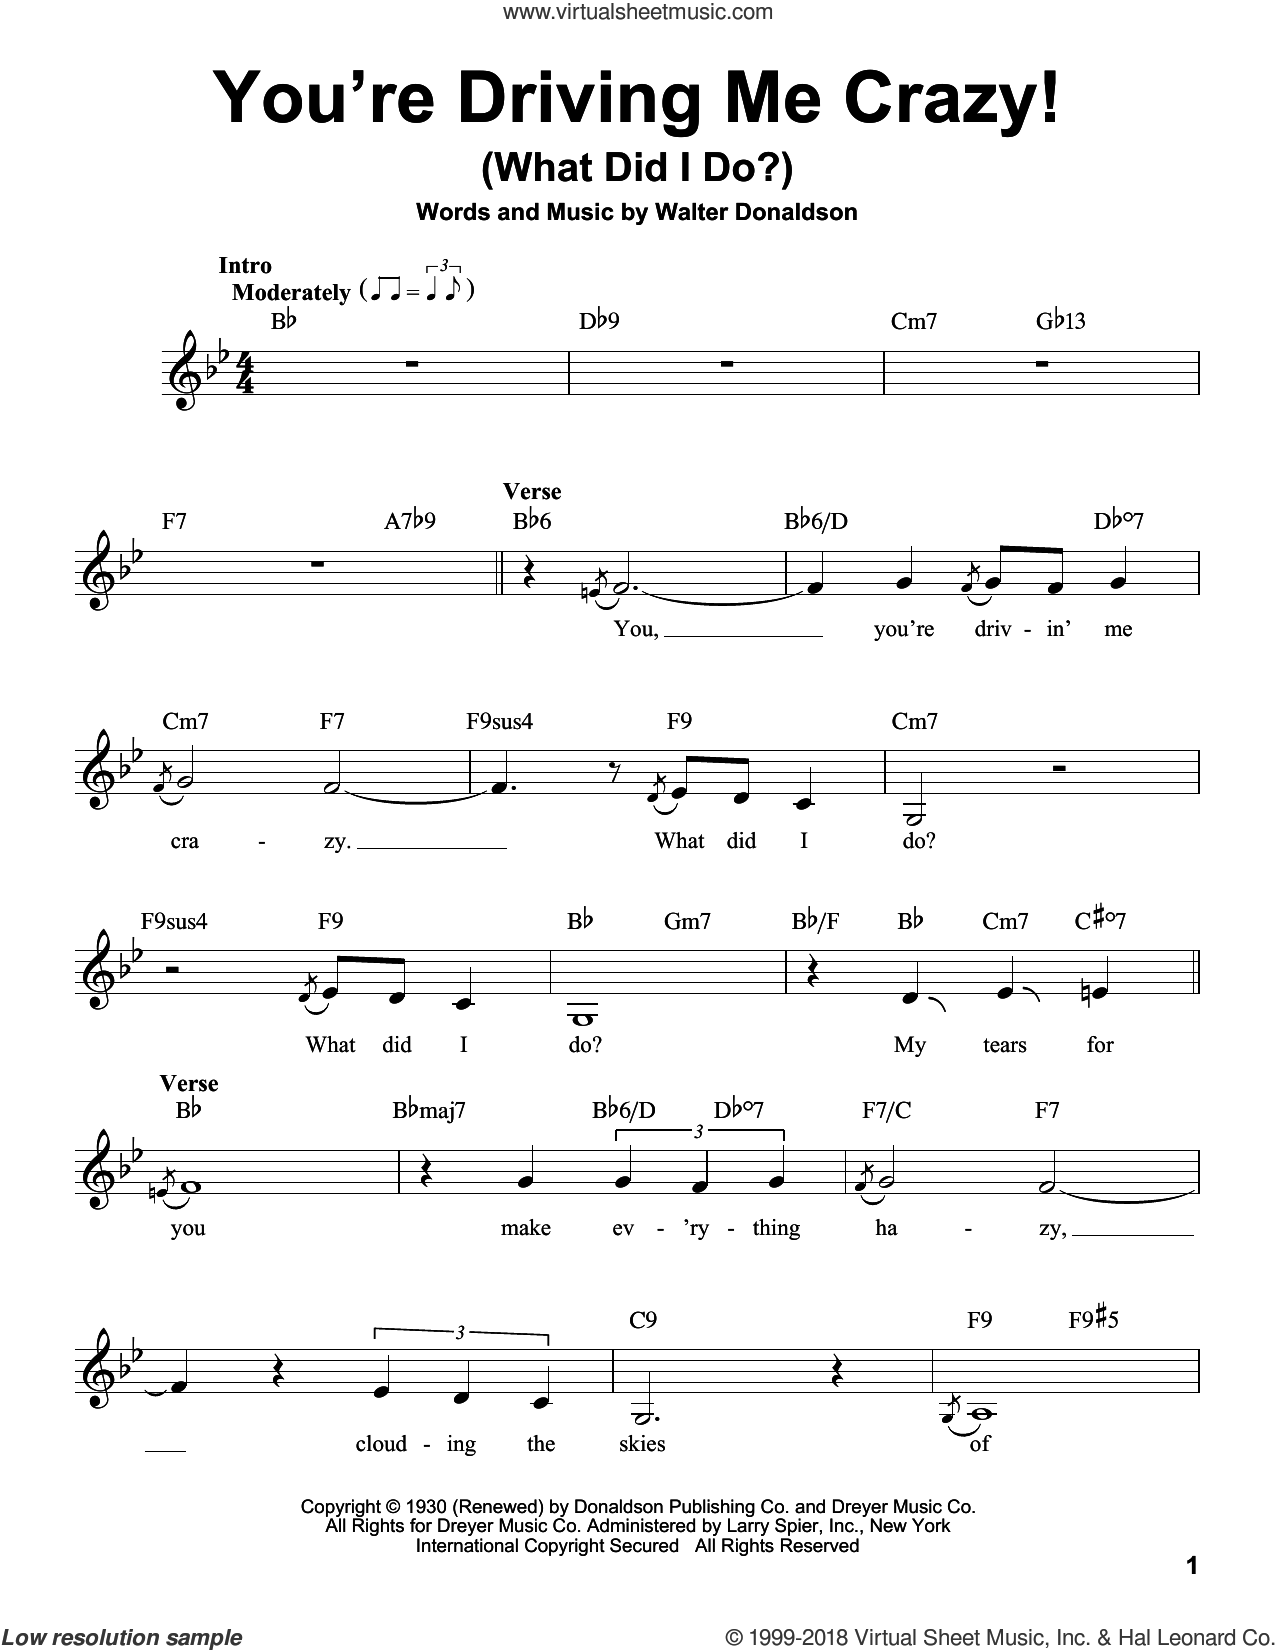 You're Driving Me Crazy! (What Did I Do?) sheet music for voice solo by Walter Donaldson, intermediate skill level